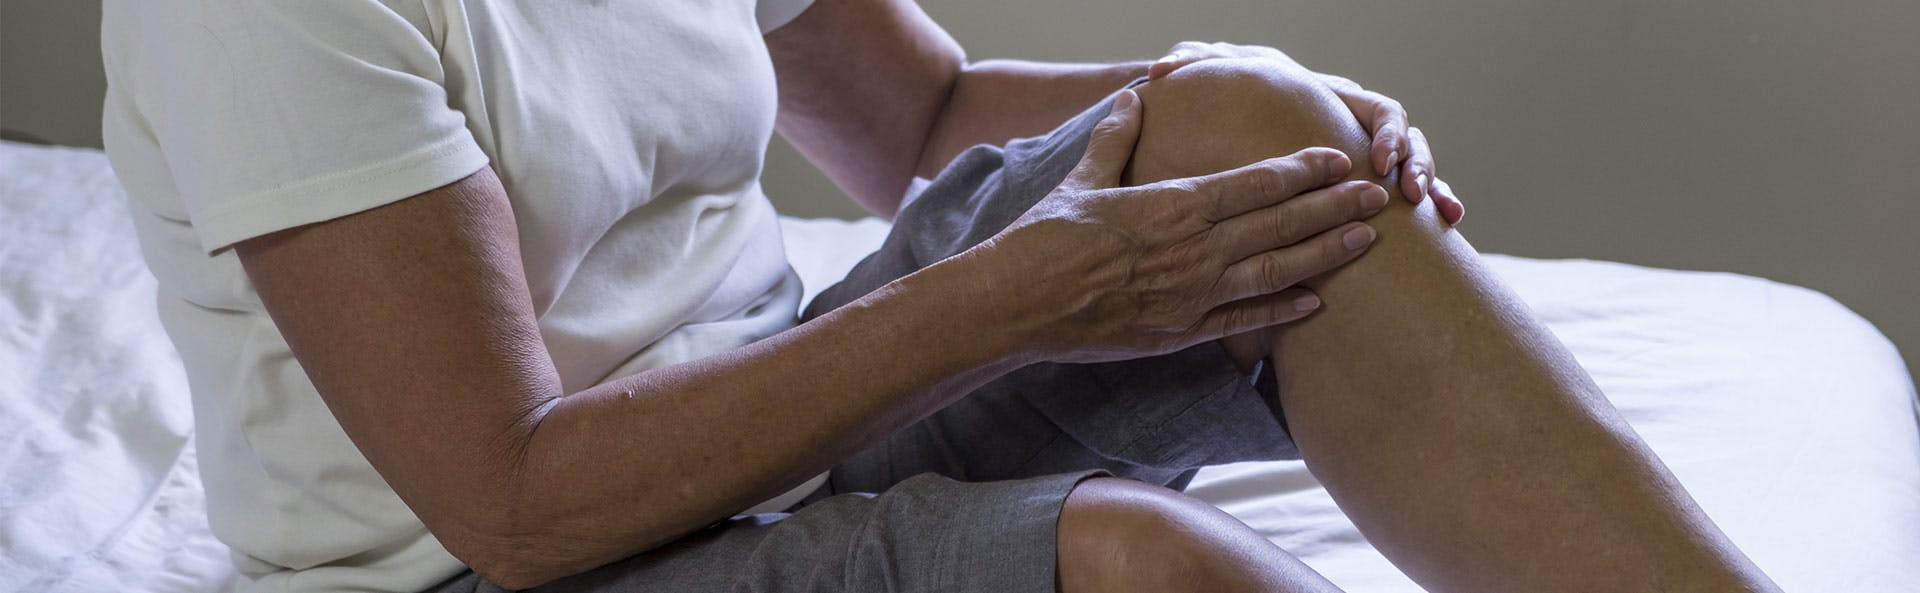 A woman dealing with knee pain